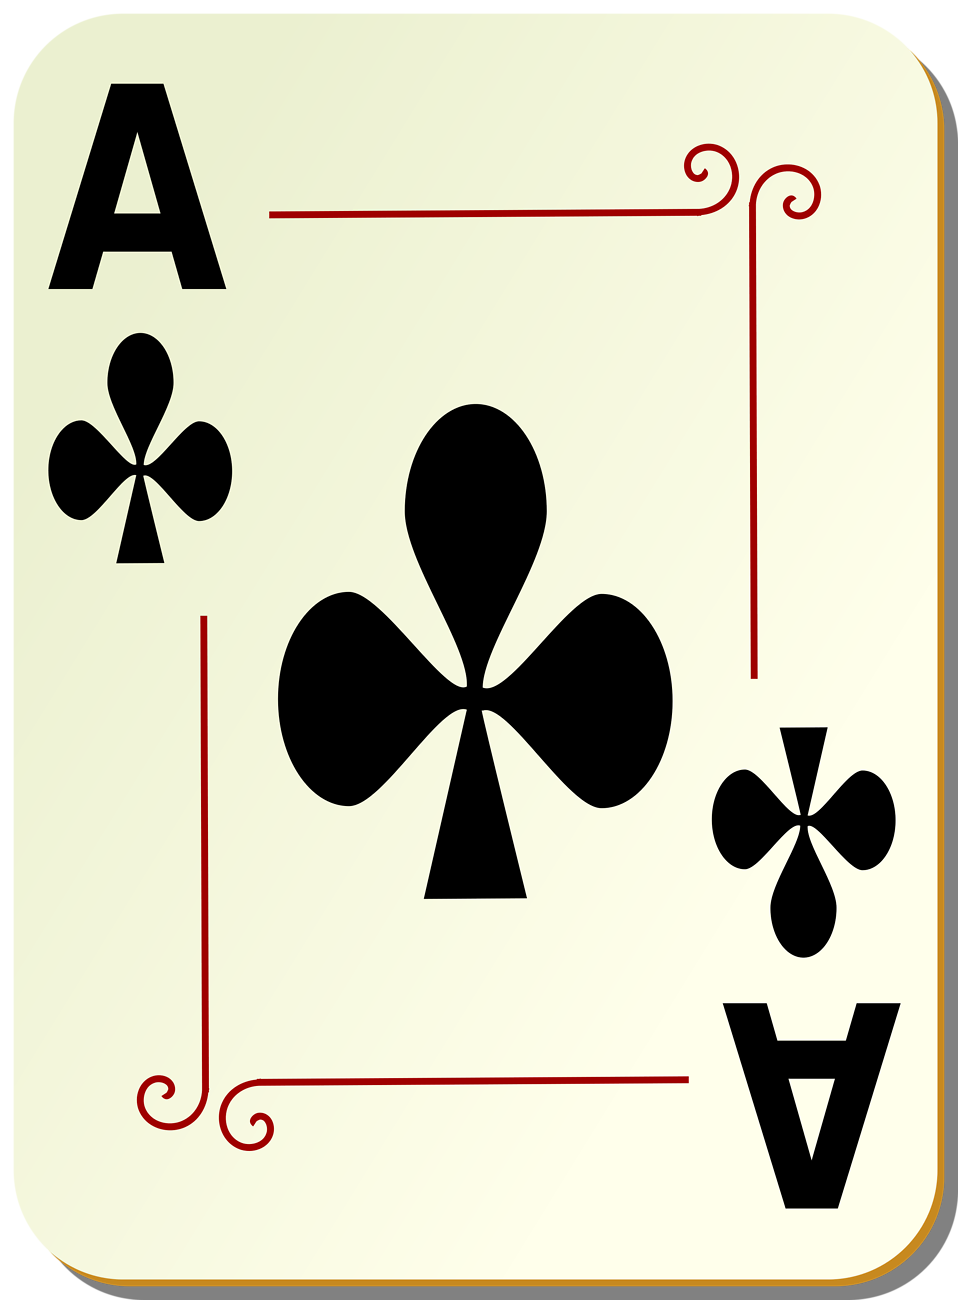 Ace card clip art jpg freeuse library Ace playing card clipart - ClipartFest jpg freeuse library